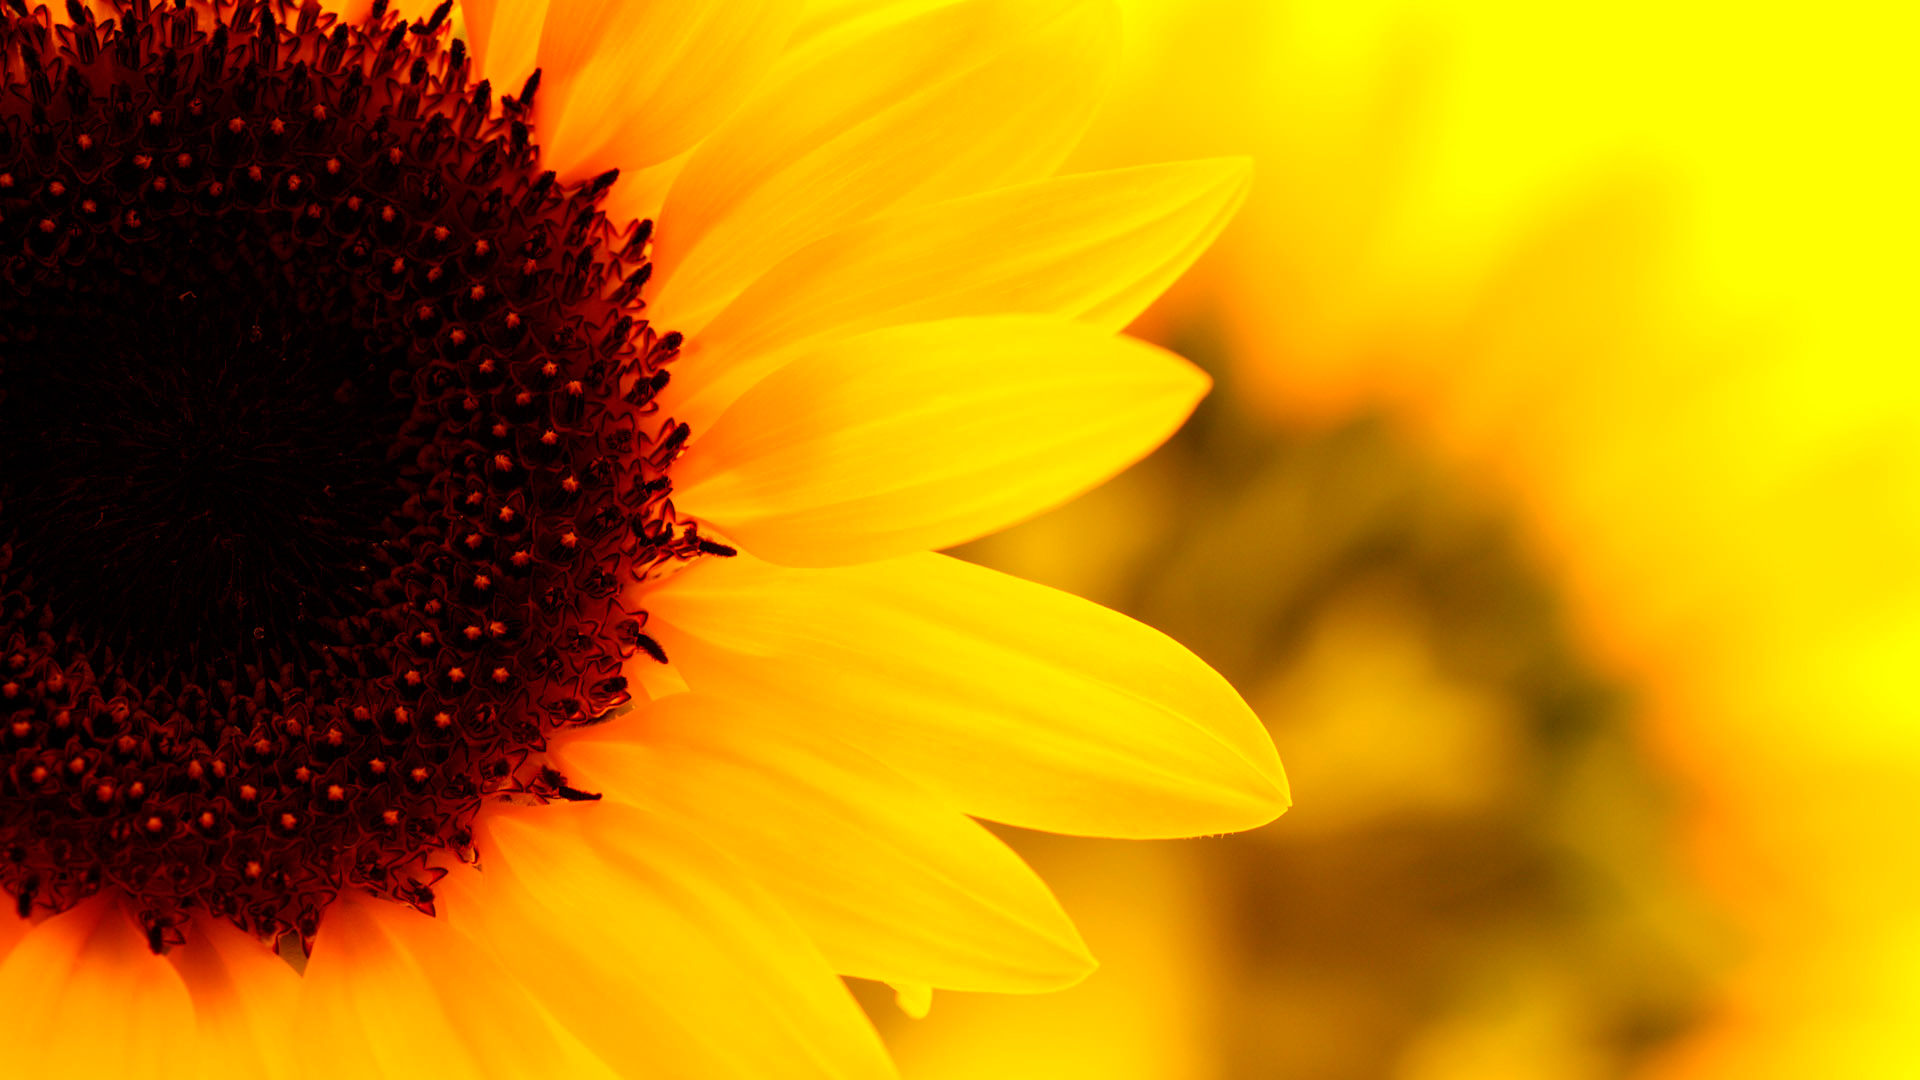 Sunflower Wallpapers | Best Wallpapers